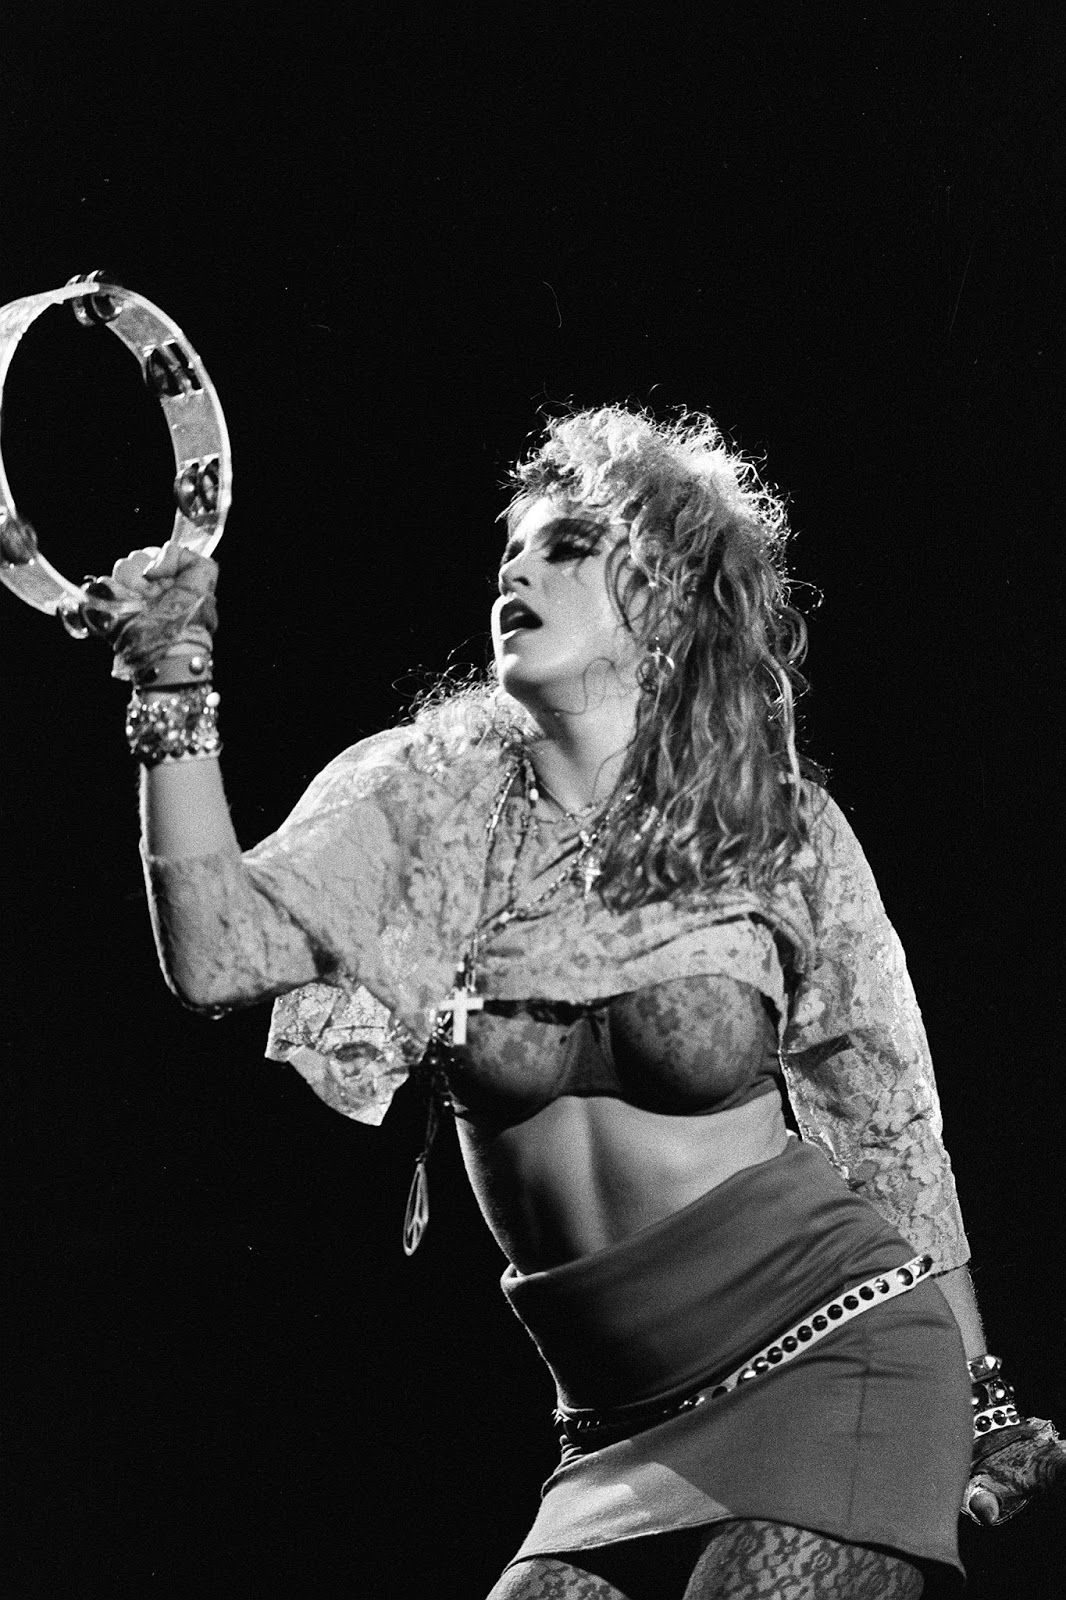 Madonna Performs The Virgin Tour At Radio City Music Hall In New York City June 6 1985 Lady Madonna Madonna Madonna Pictures